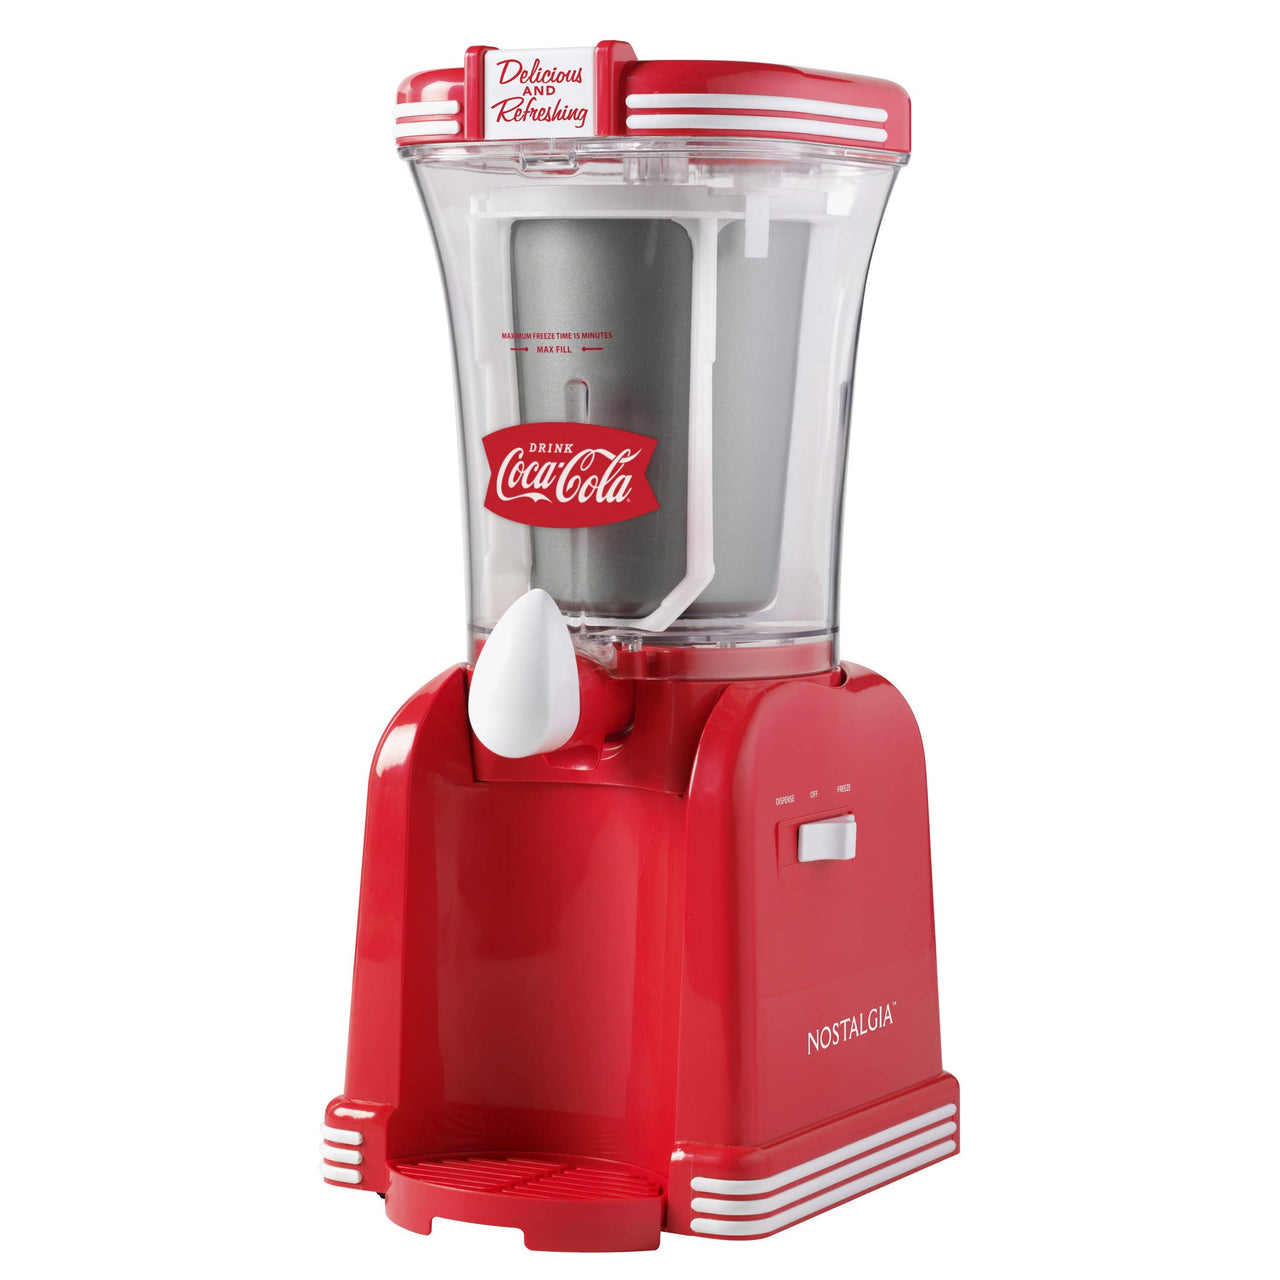 Coca-Cola® 32-Ounce Slush Drink Maker